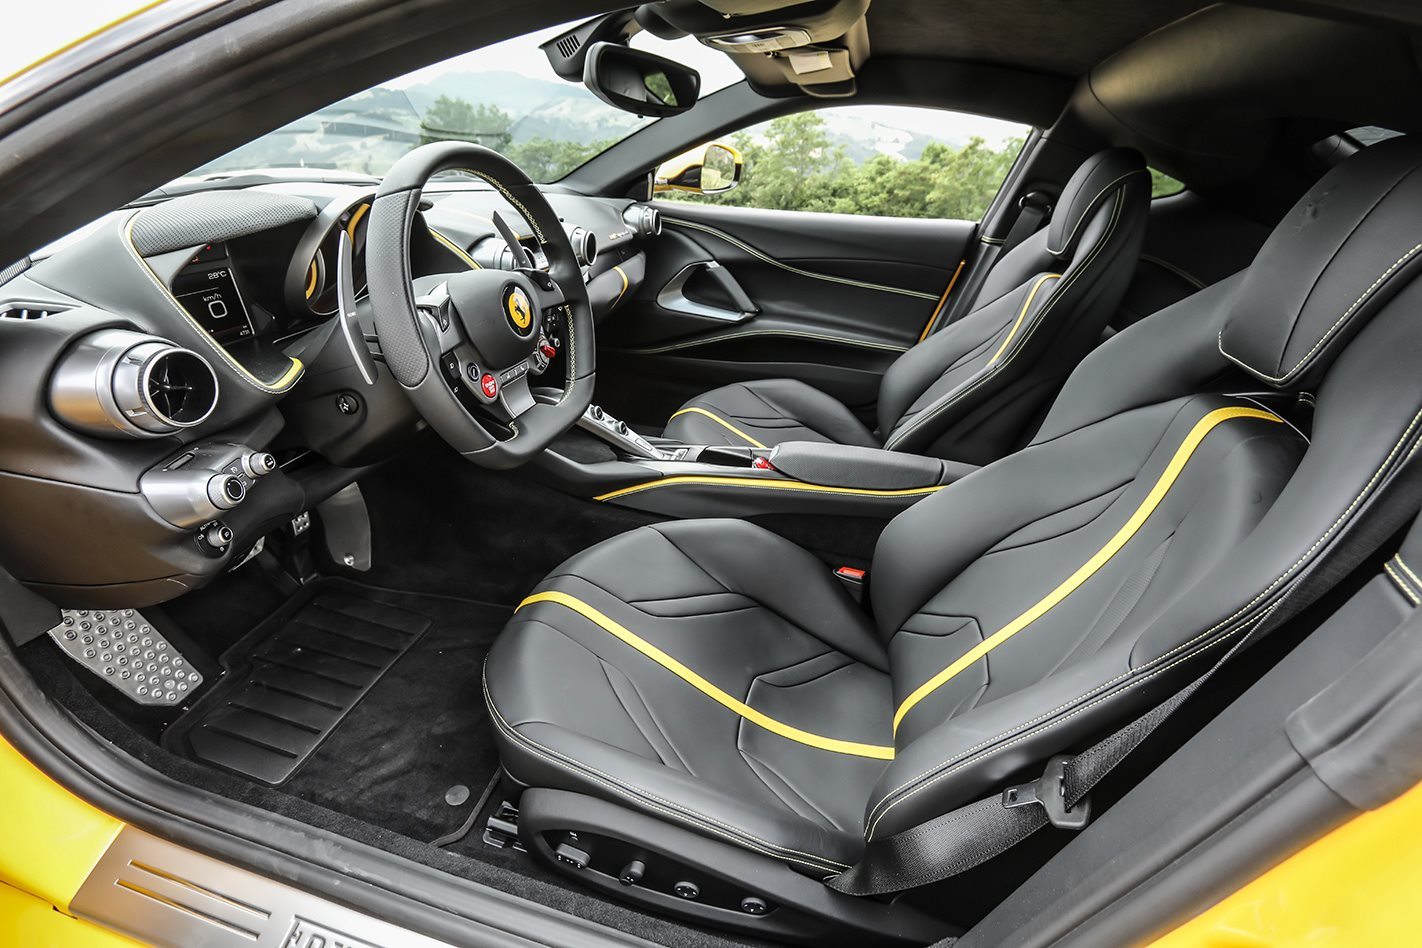 2018 Ferrari 812 Superfast seats.jpg